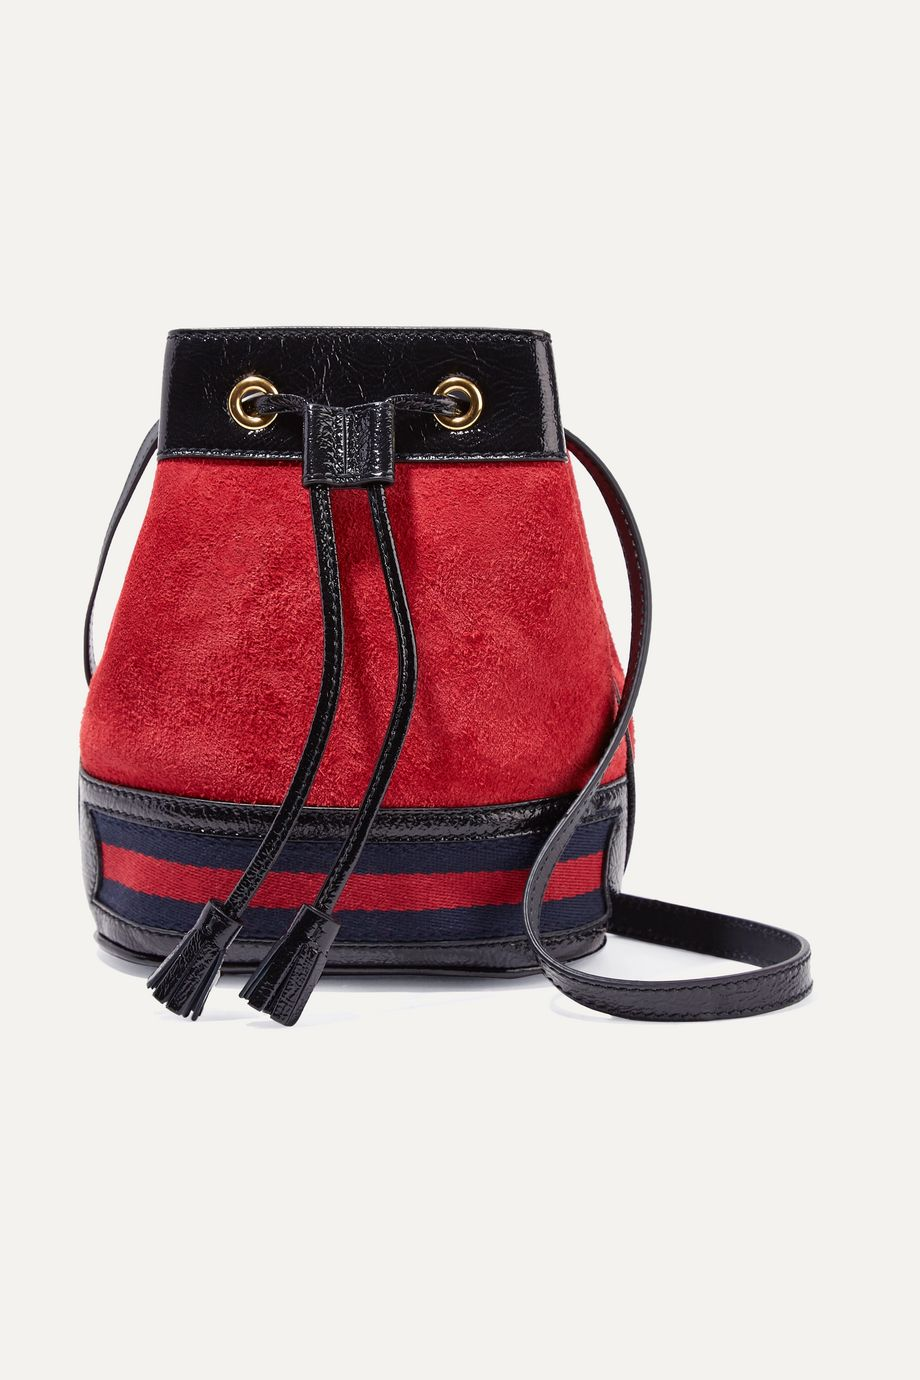 Gucci Ophidia mini textured leather-trimmed suede bucket bag